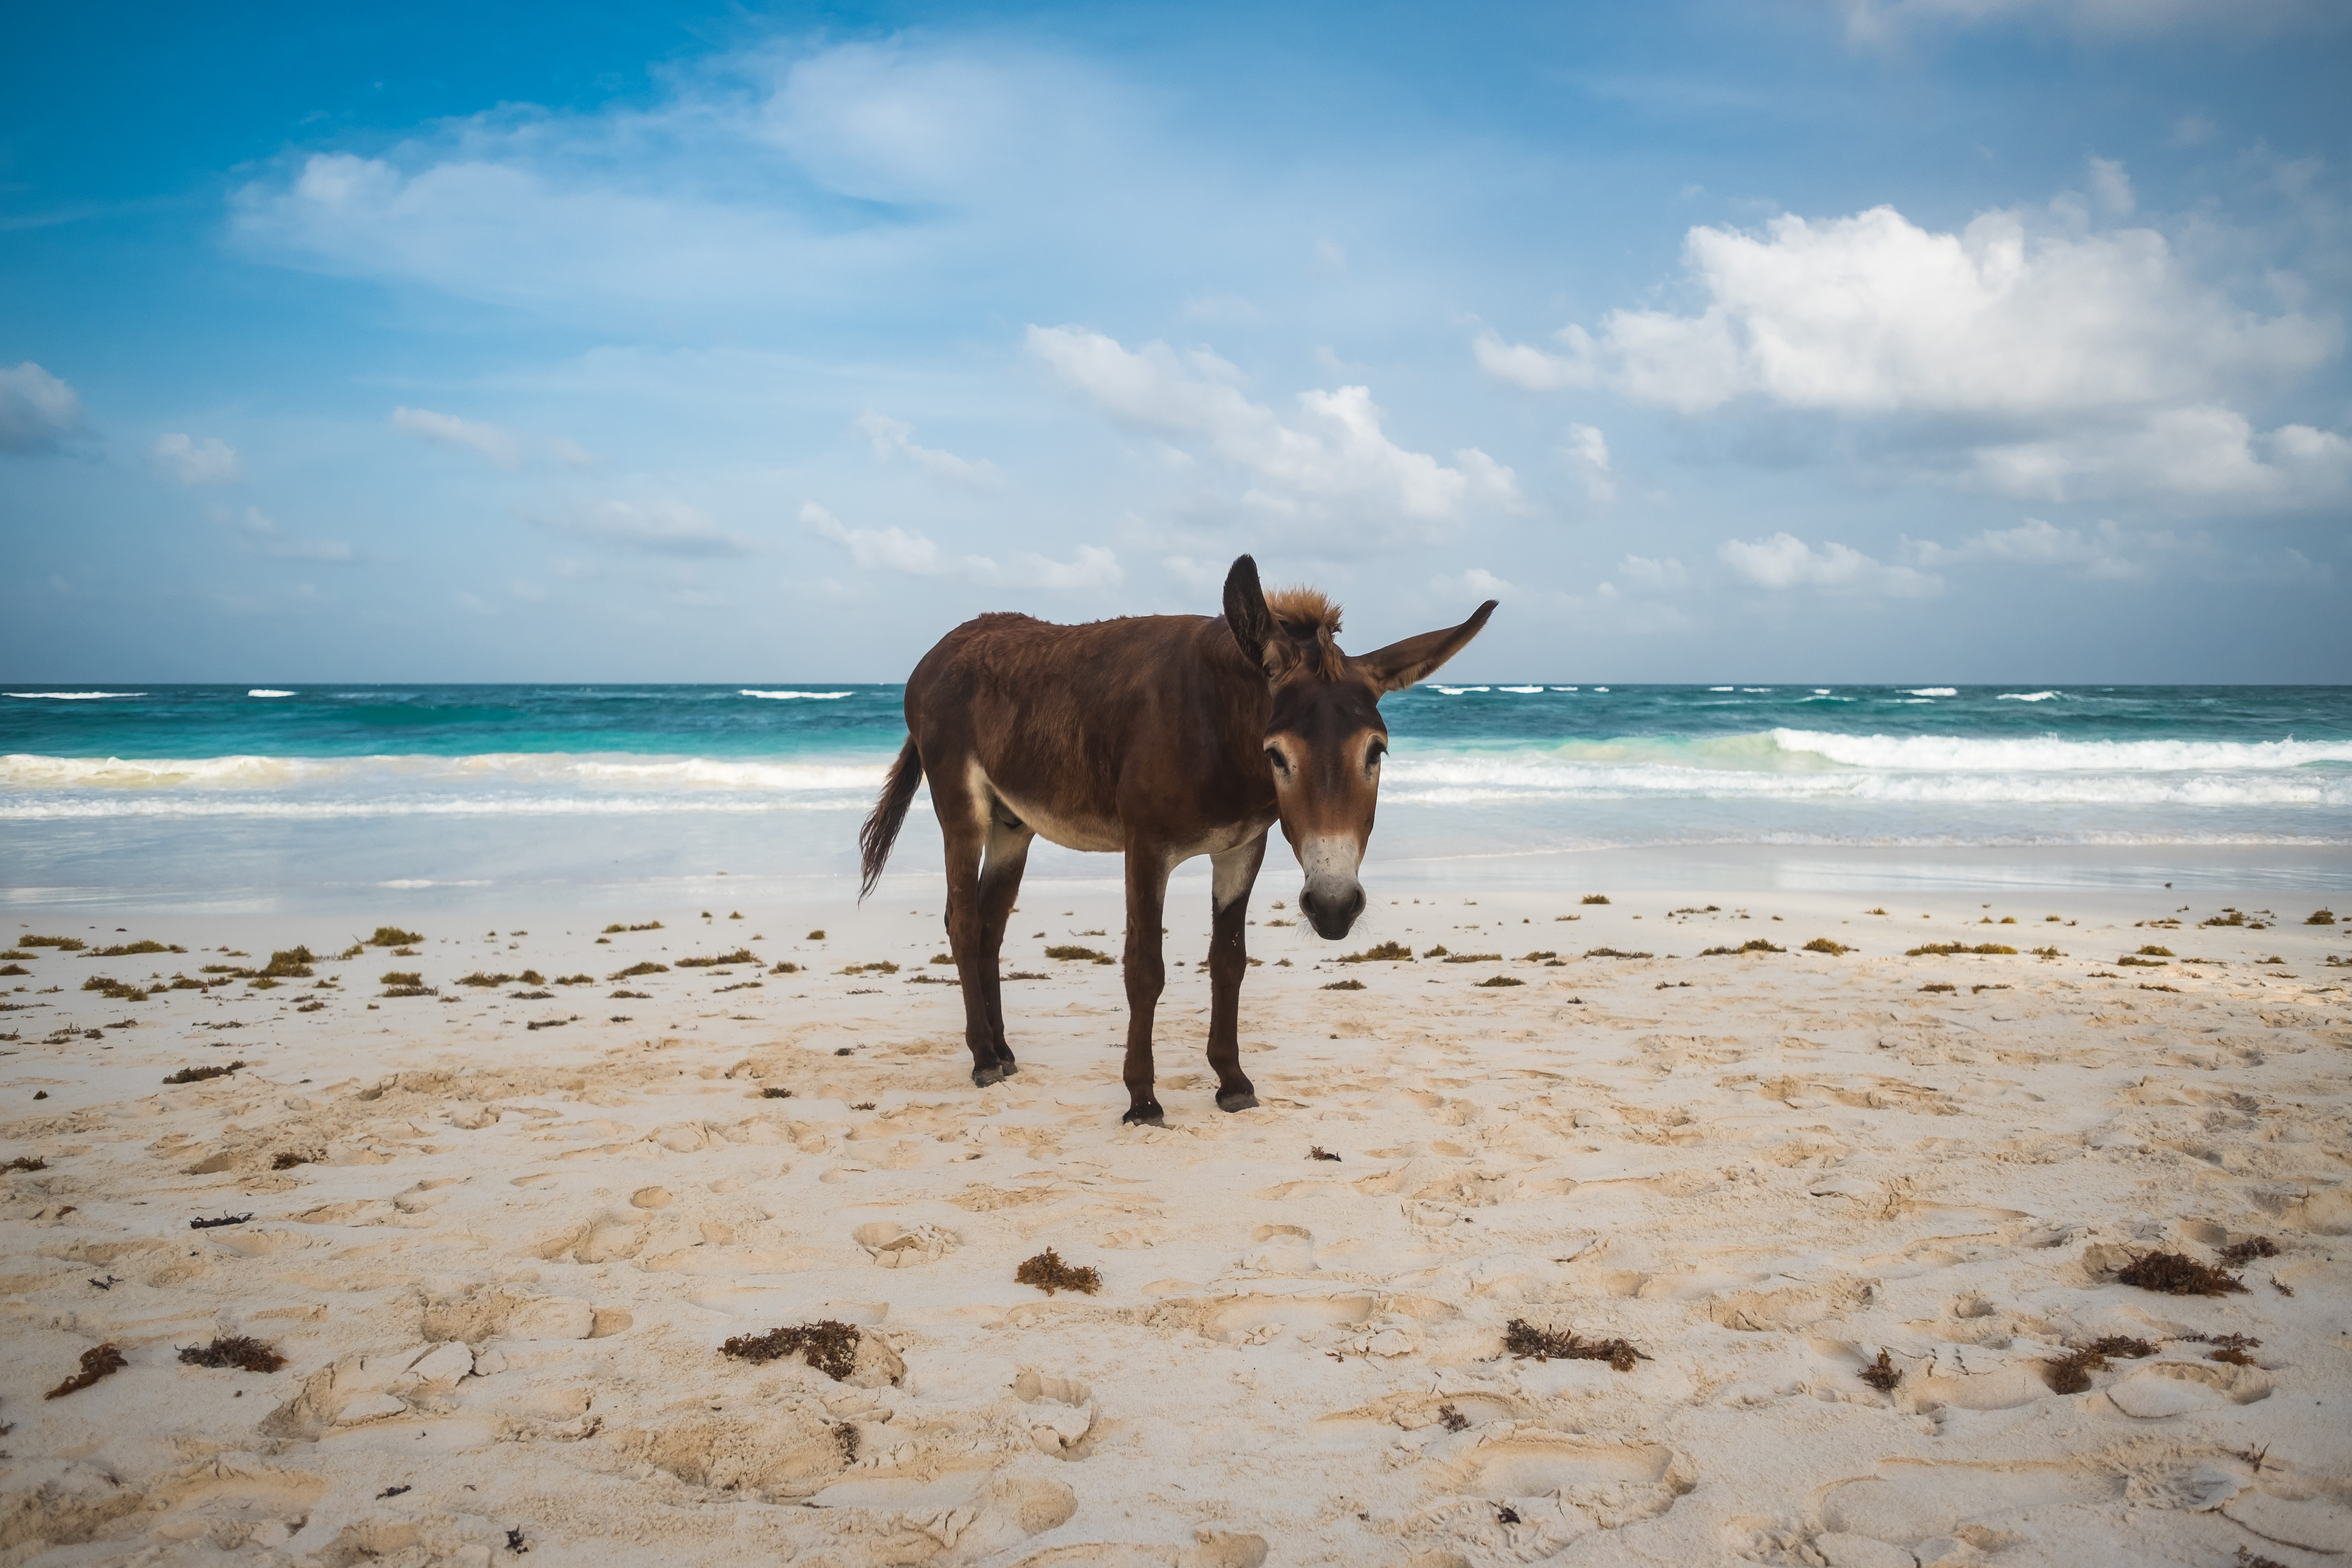 A lone donkey standing on a sandy beach near the ocean in Tulum